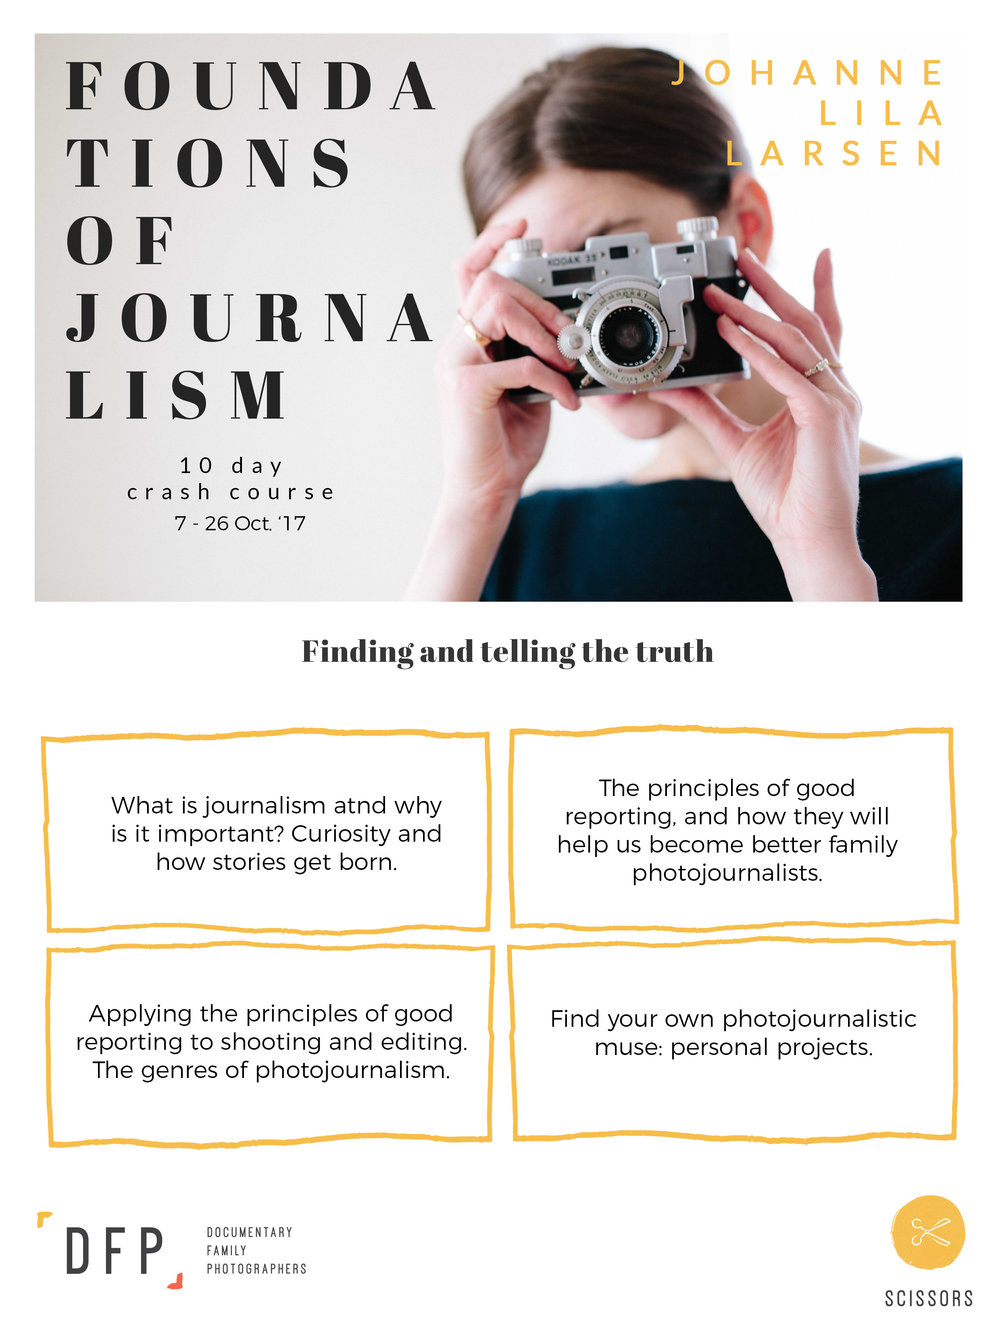 foundations of journalism course